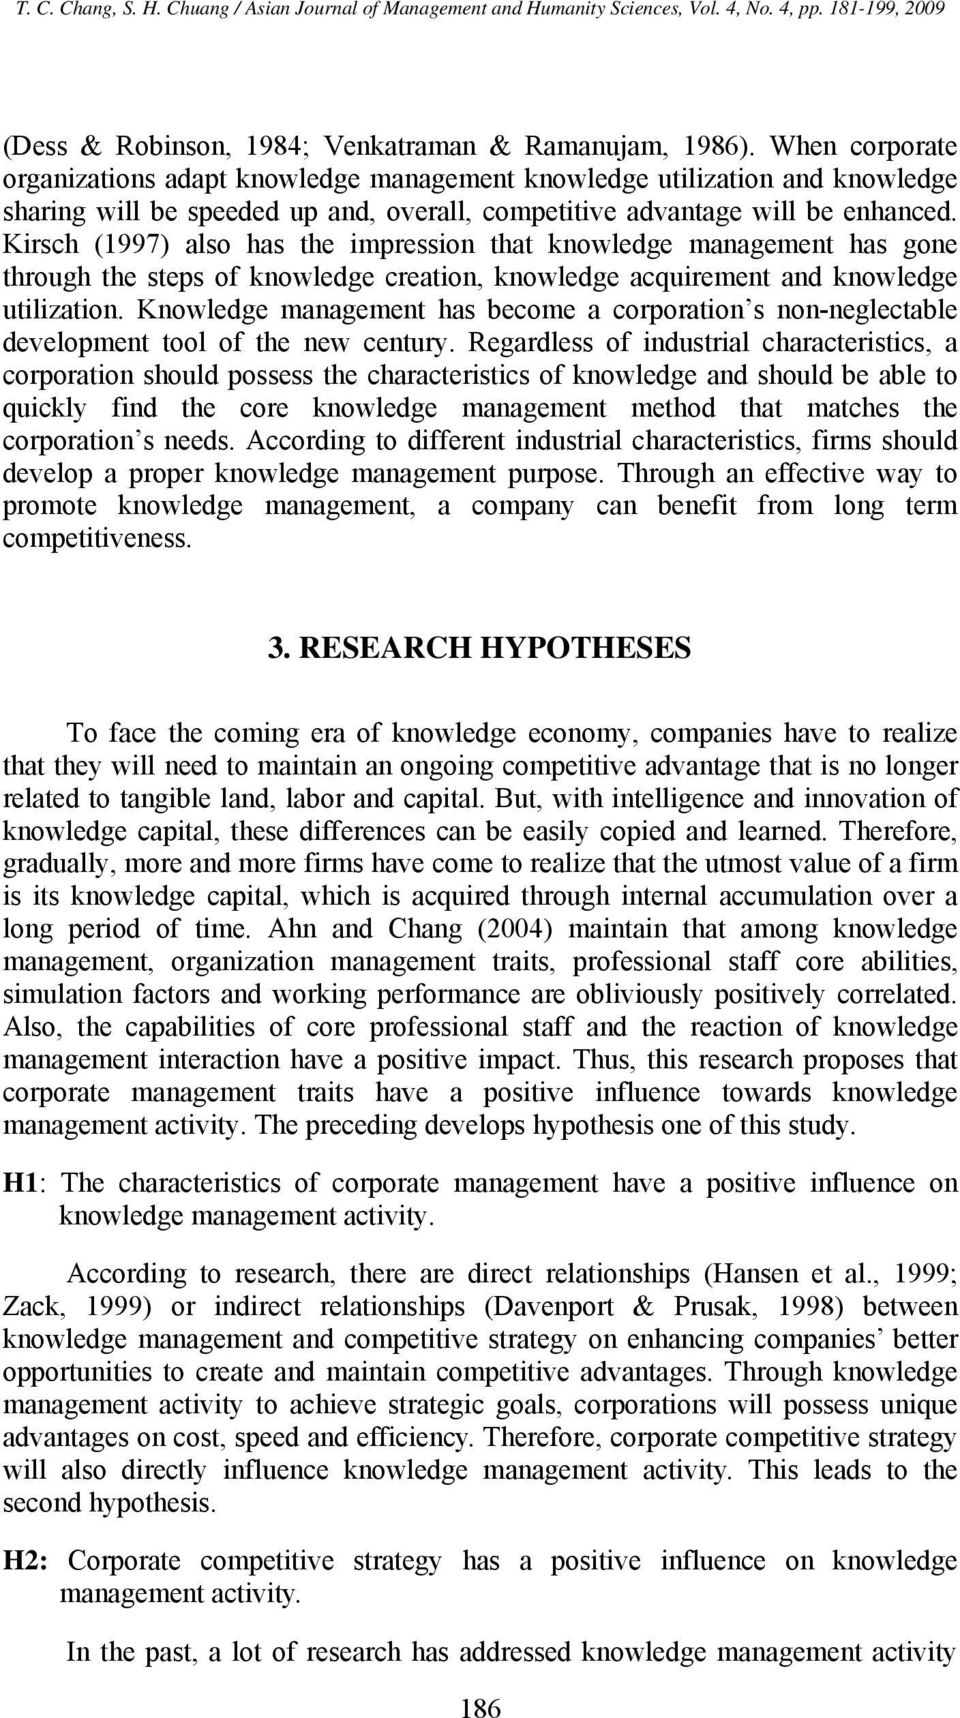 Kirsch (1997) also has the impression that knowledge management has gone through the steps of knowledge creation, knowledge acquirement and knowledge utilization.